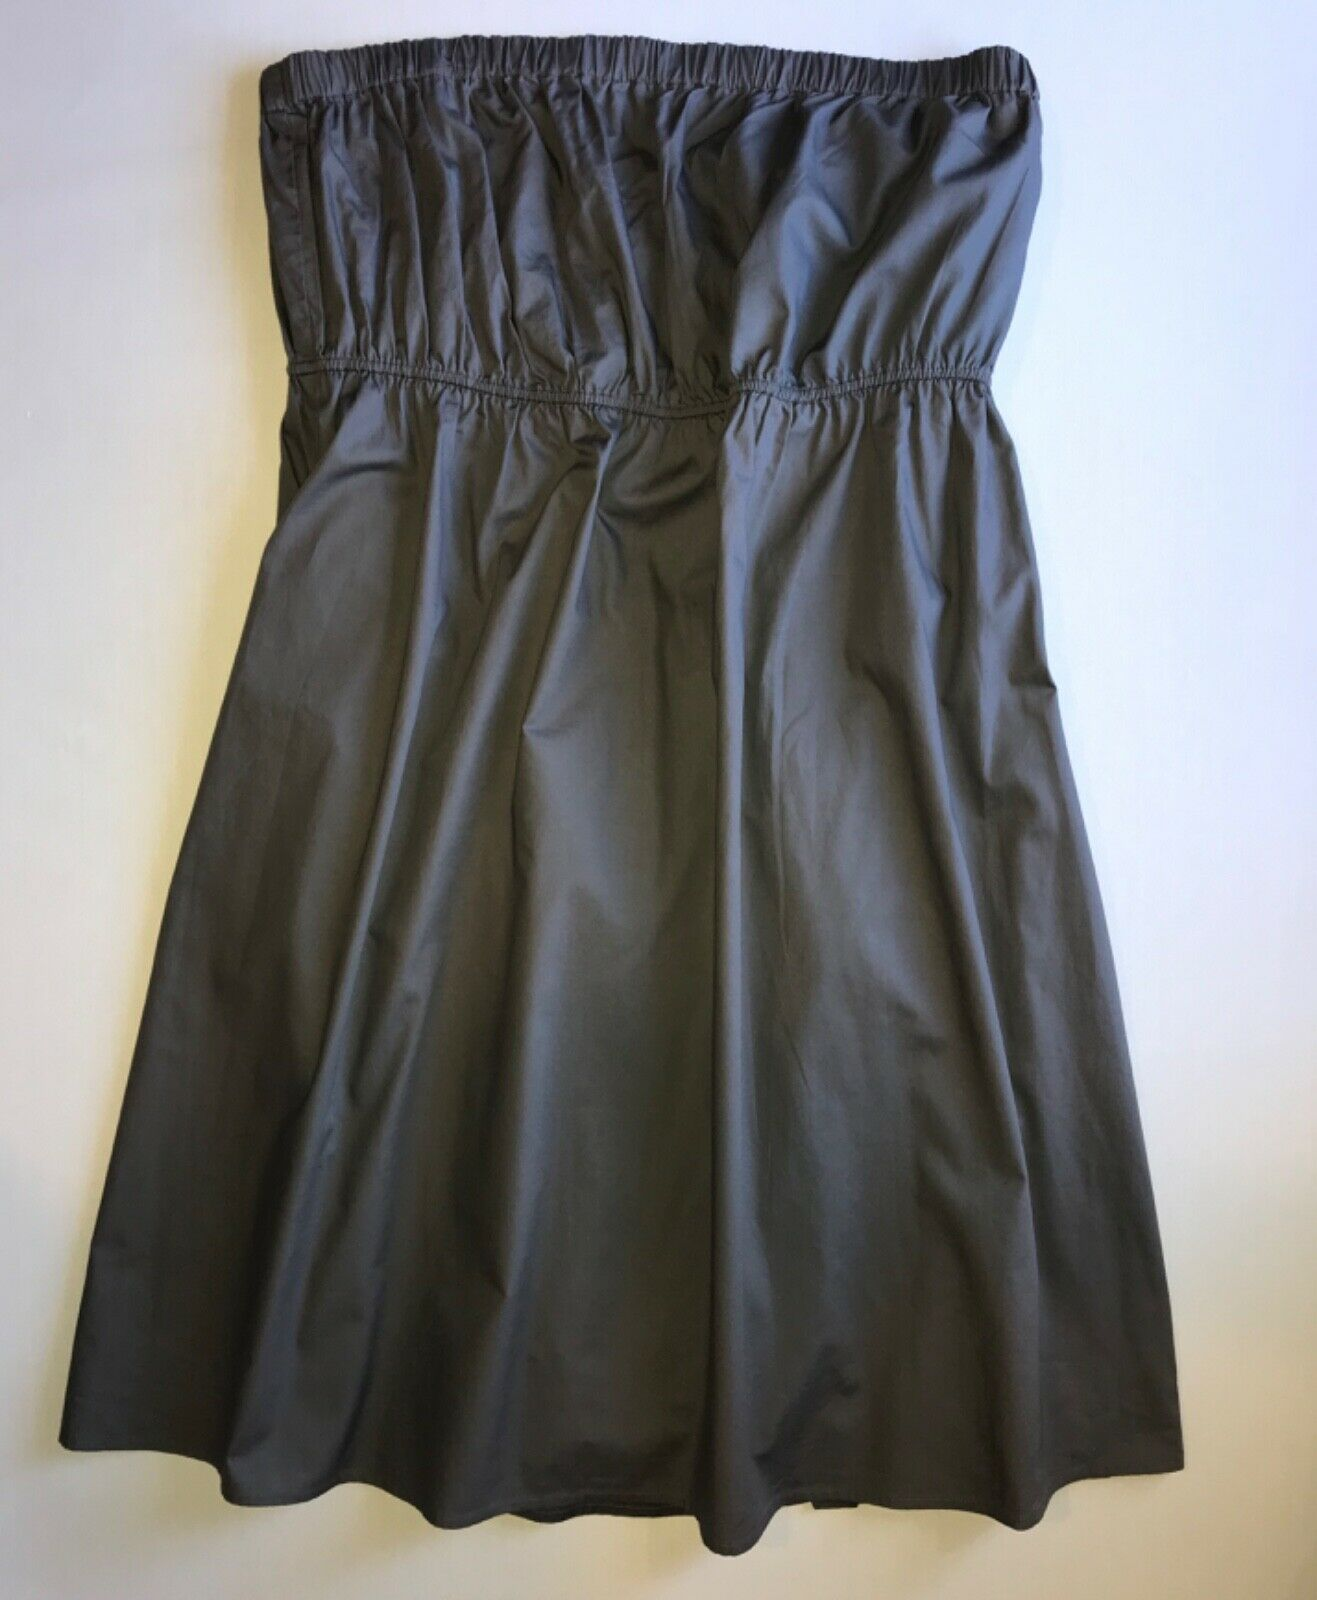 Primary image for Strapless Gray Belted Shift Dress by Daisy Fuentes in Xtra Large